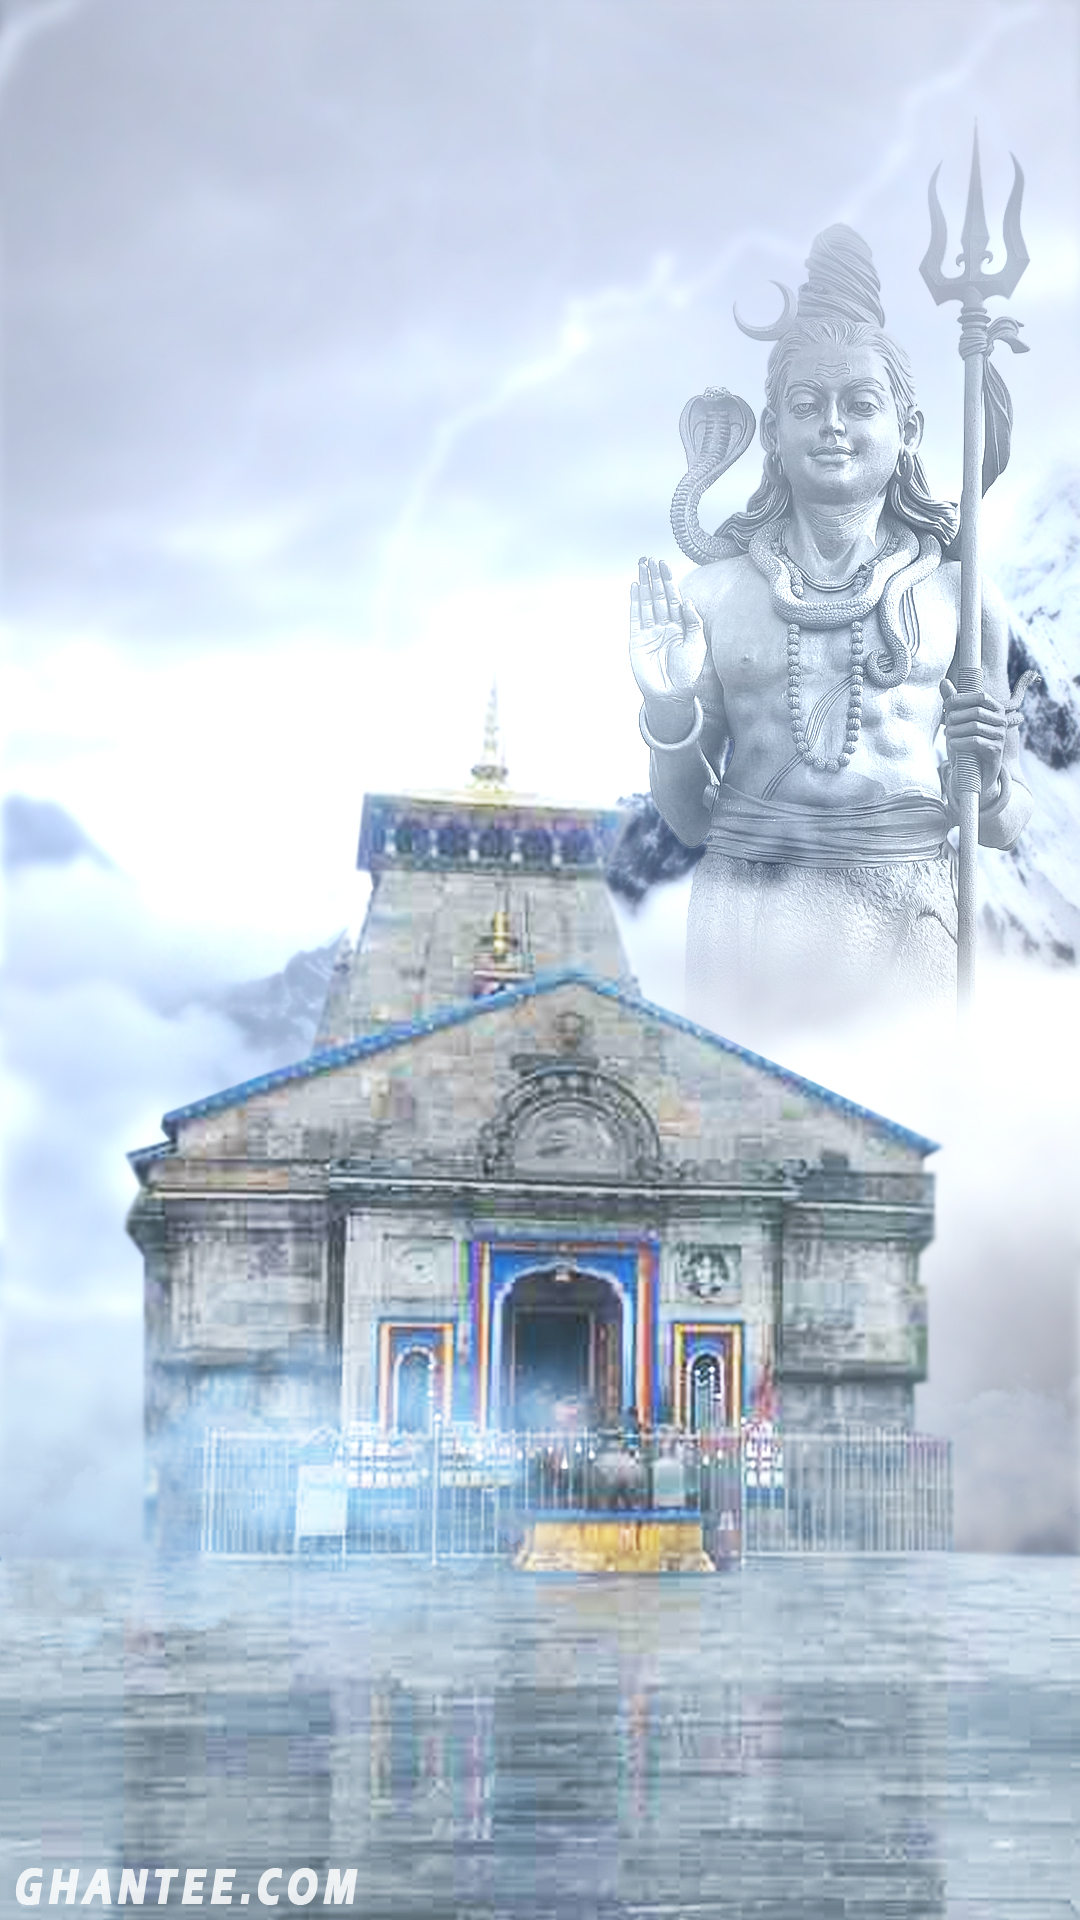 kedarnath temple wallpaper for iphone | full HD